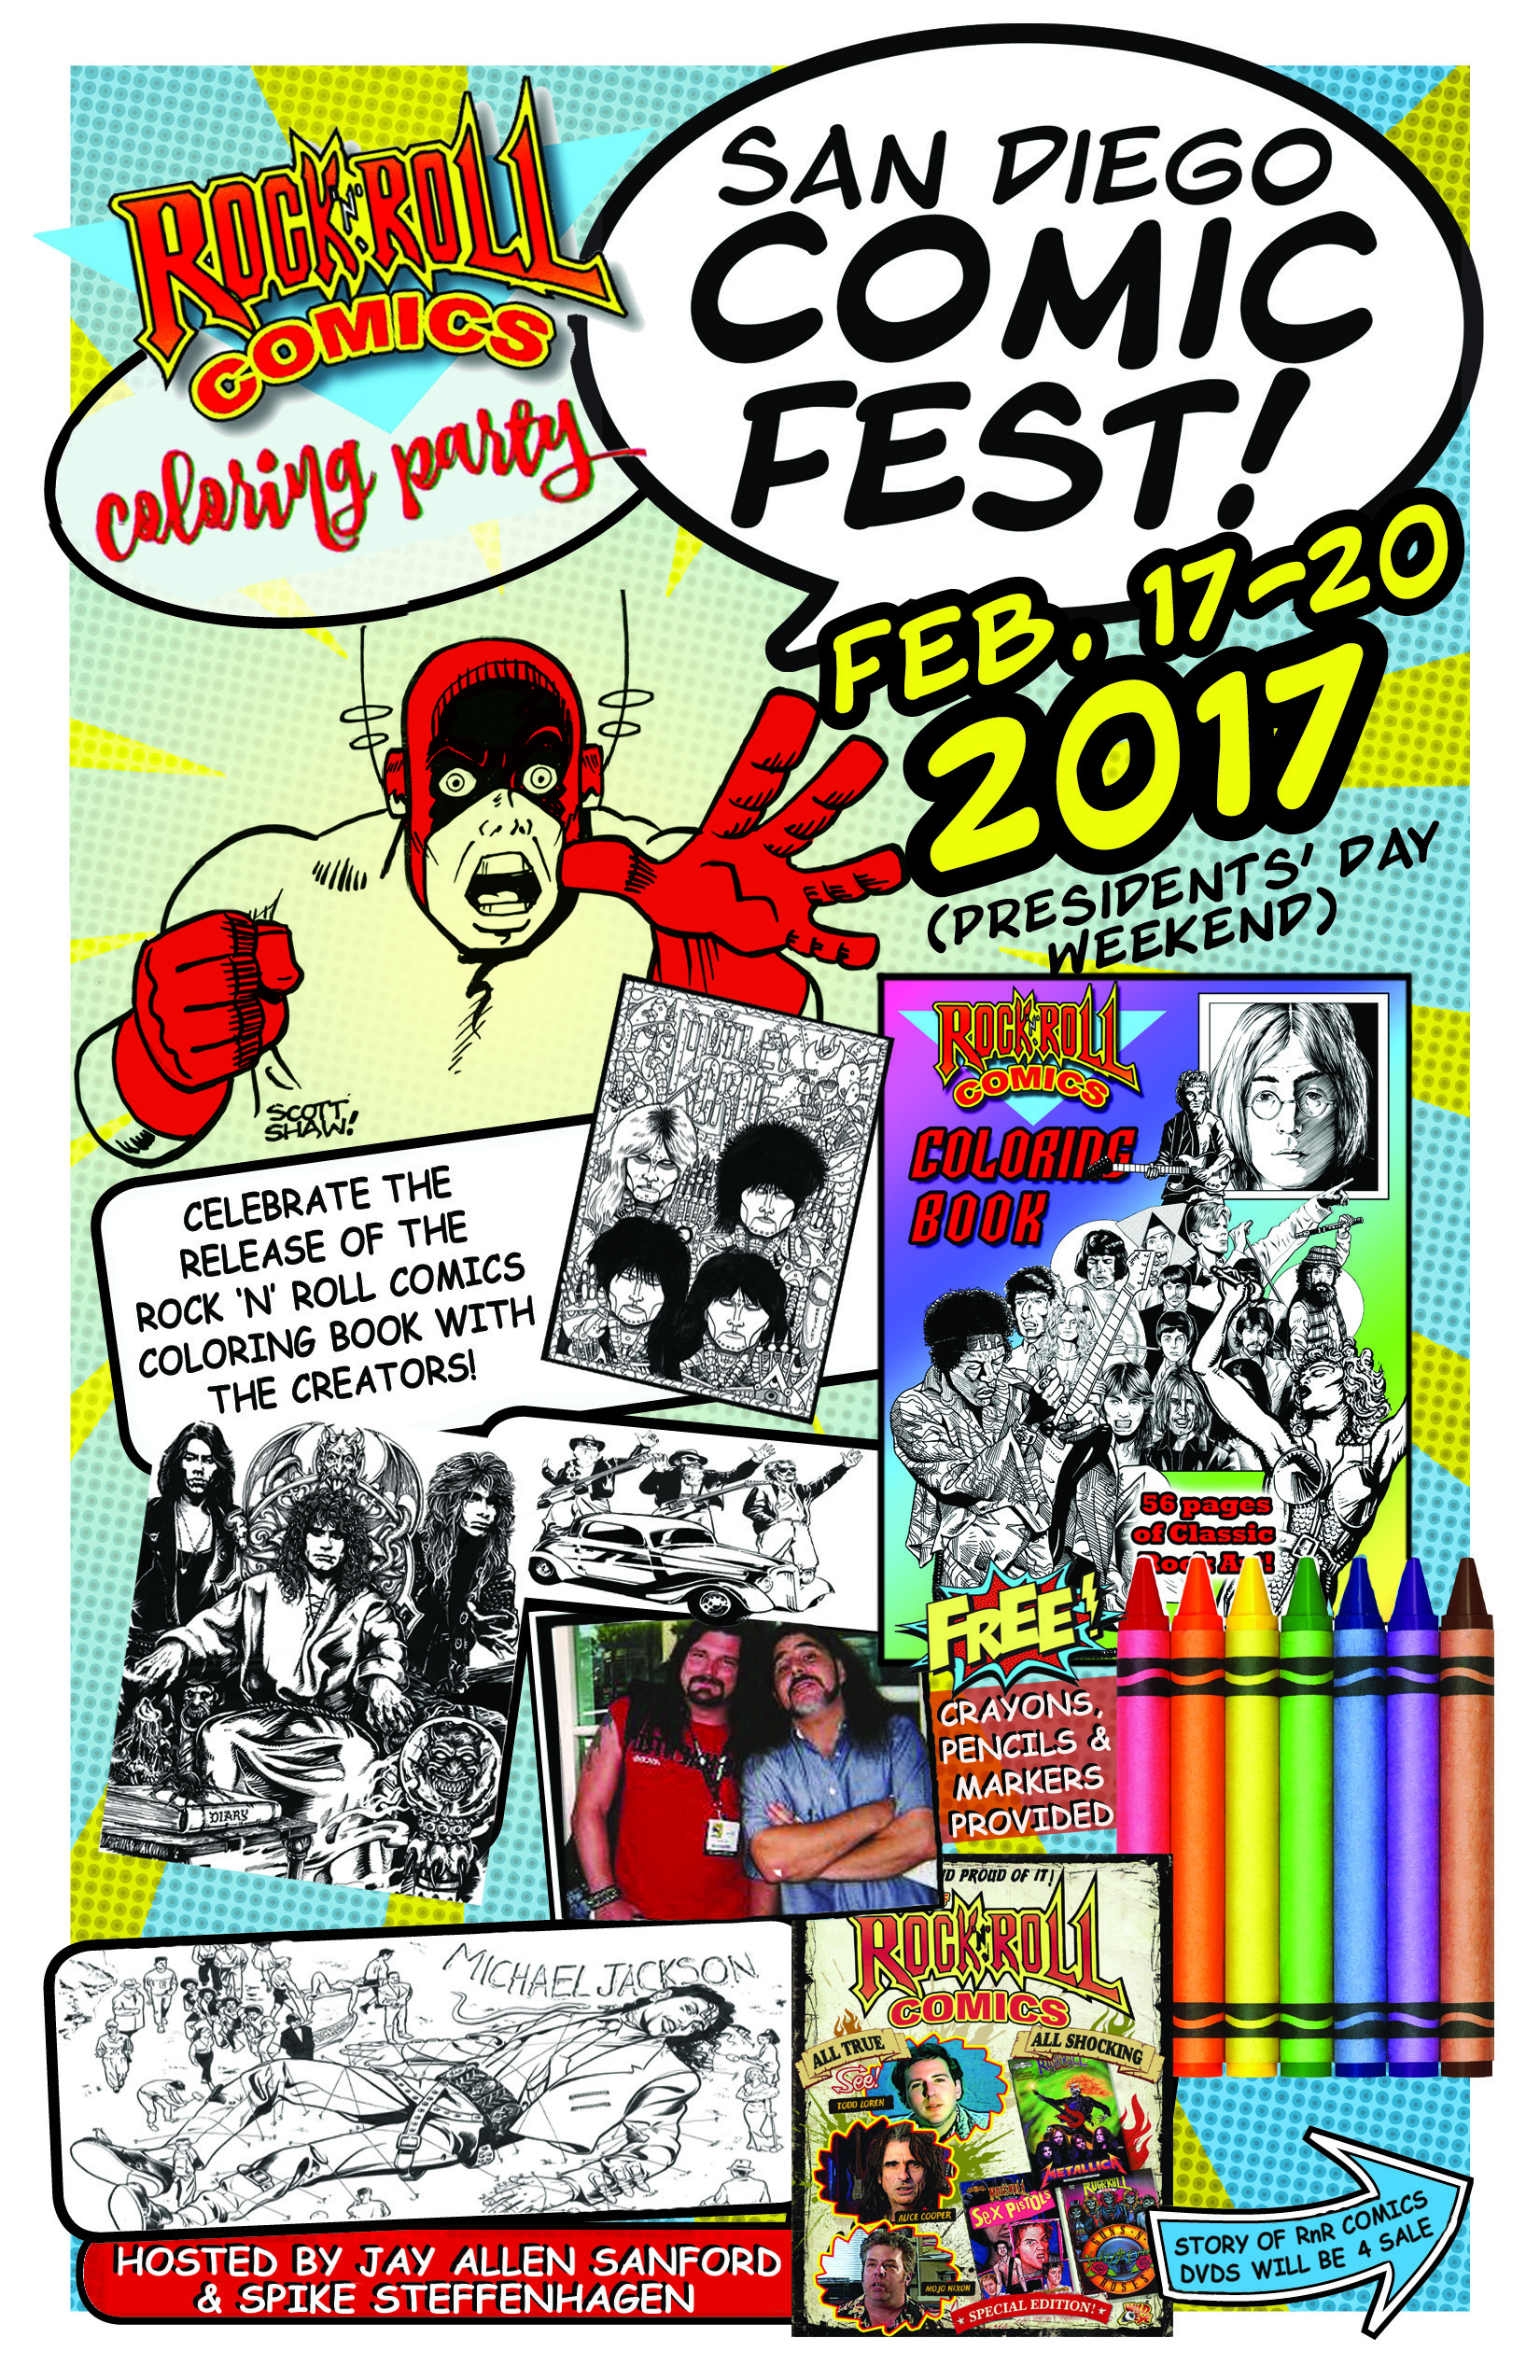 Rock N Roll Comics Coloring Book Party San Diego Comic Fest